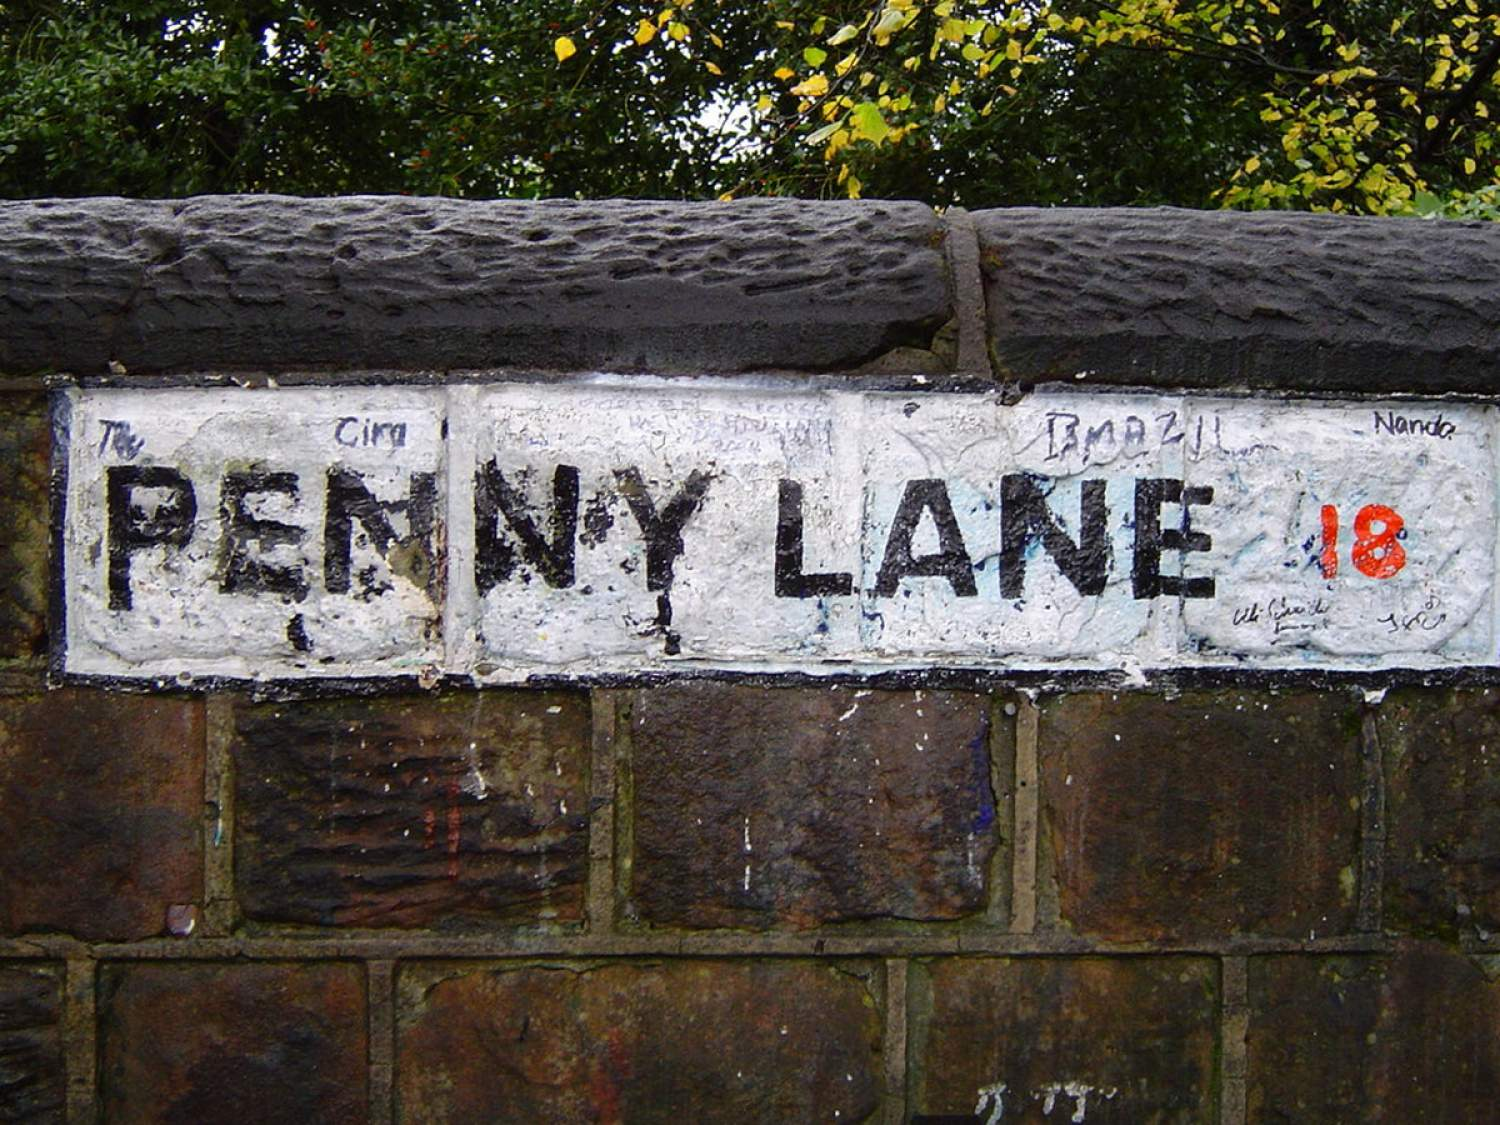 Painted sign of Penny Lane in Liverpool